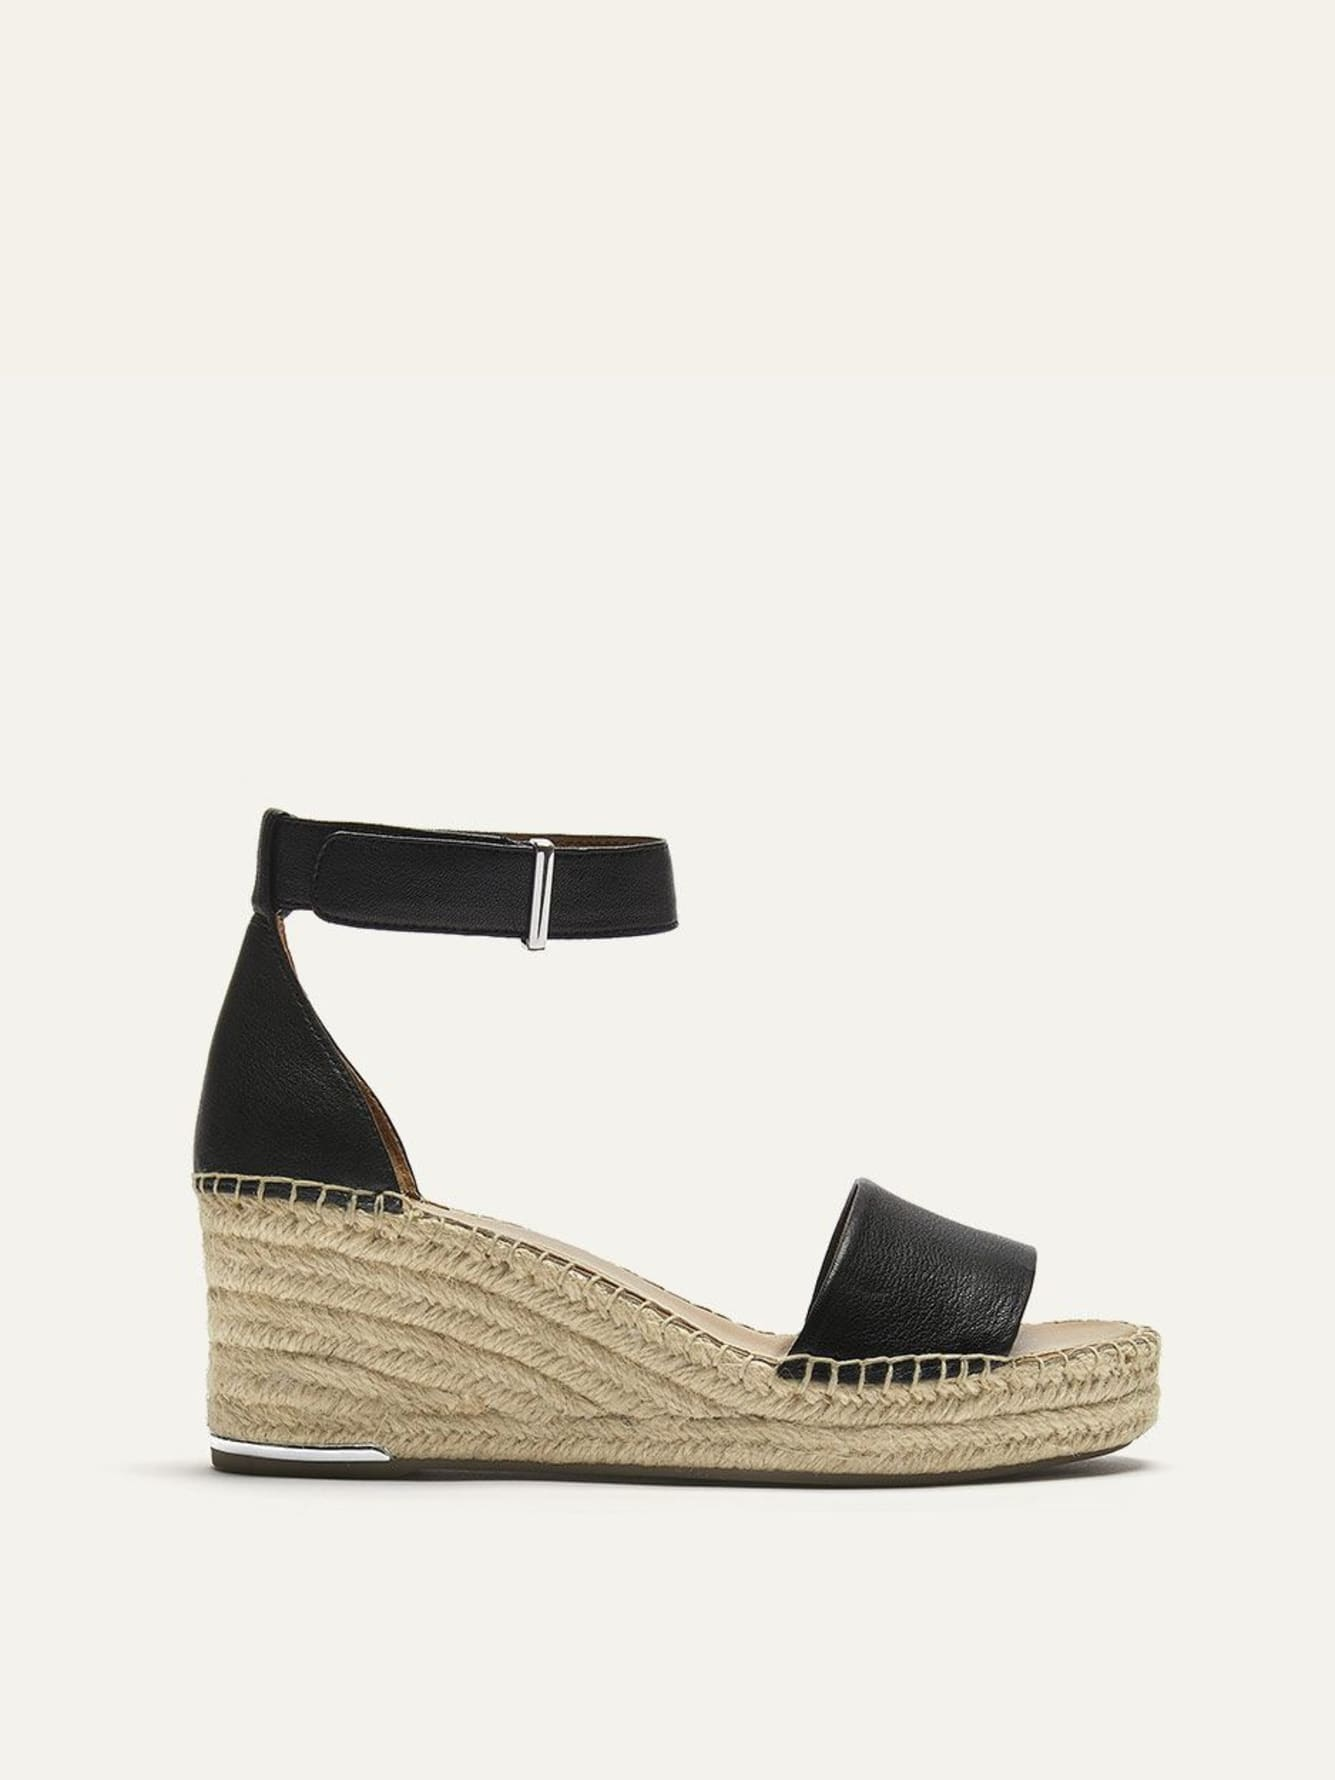 Wide Wedge Leather Sandals - Franco Sarto